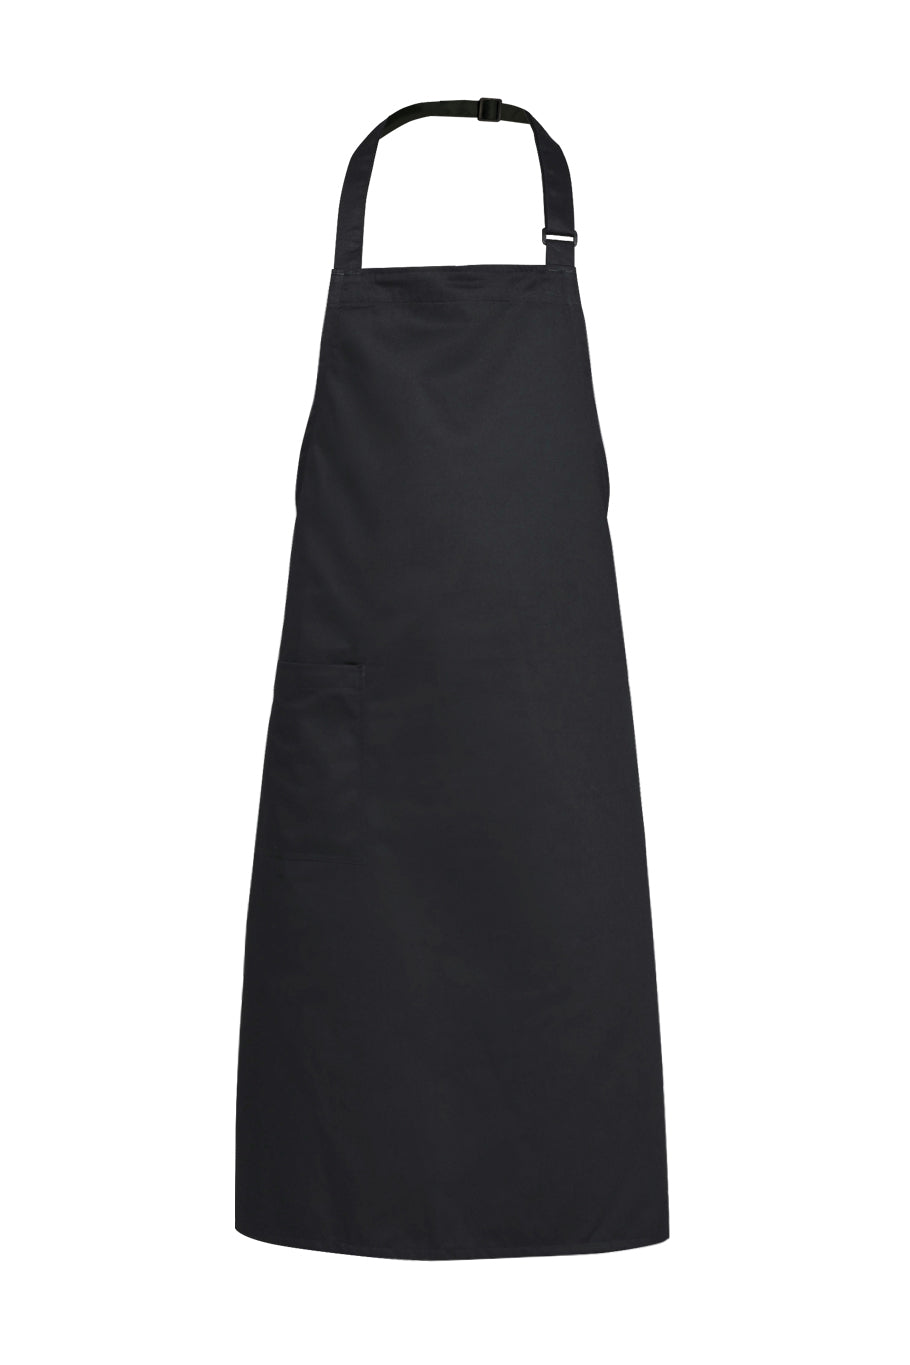 black bib apron, black full apron